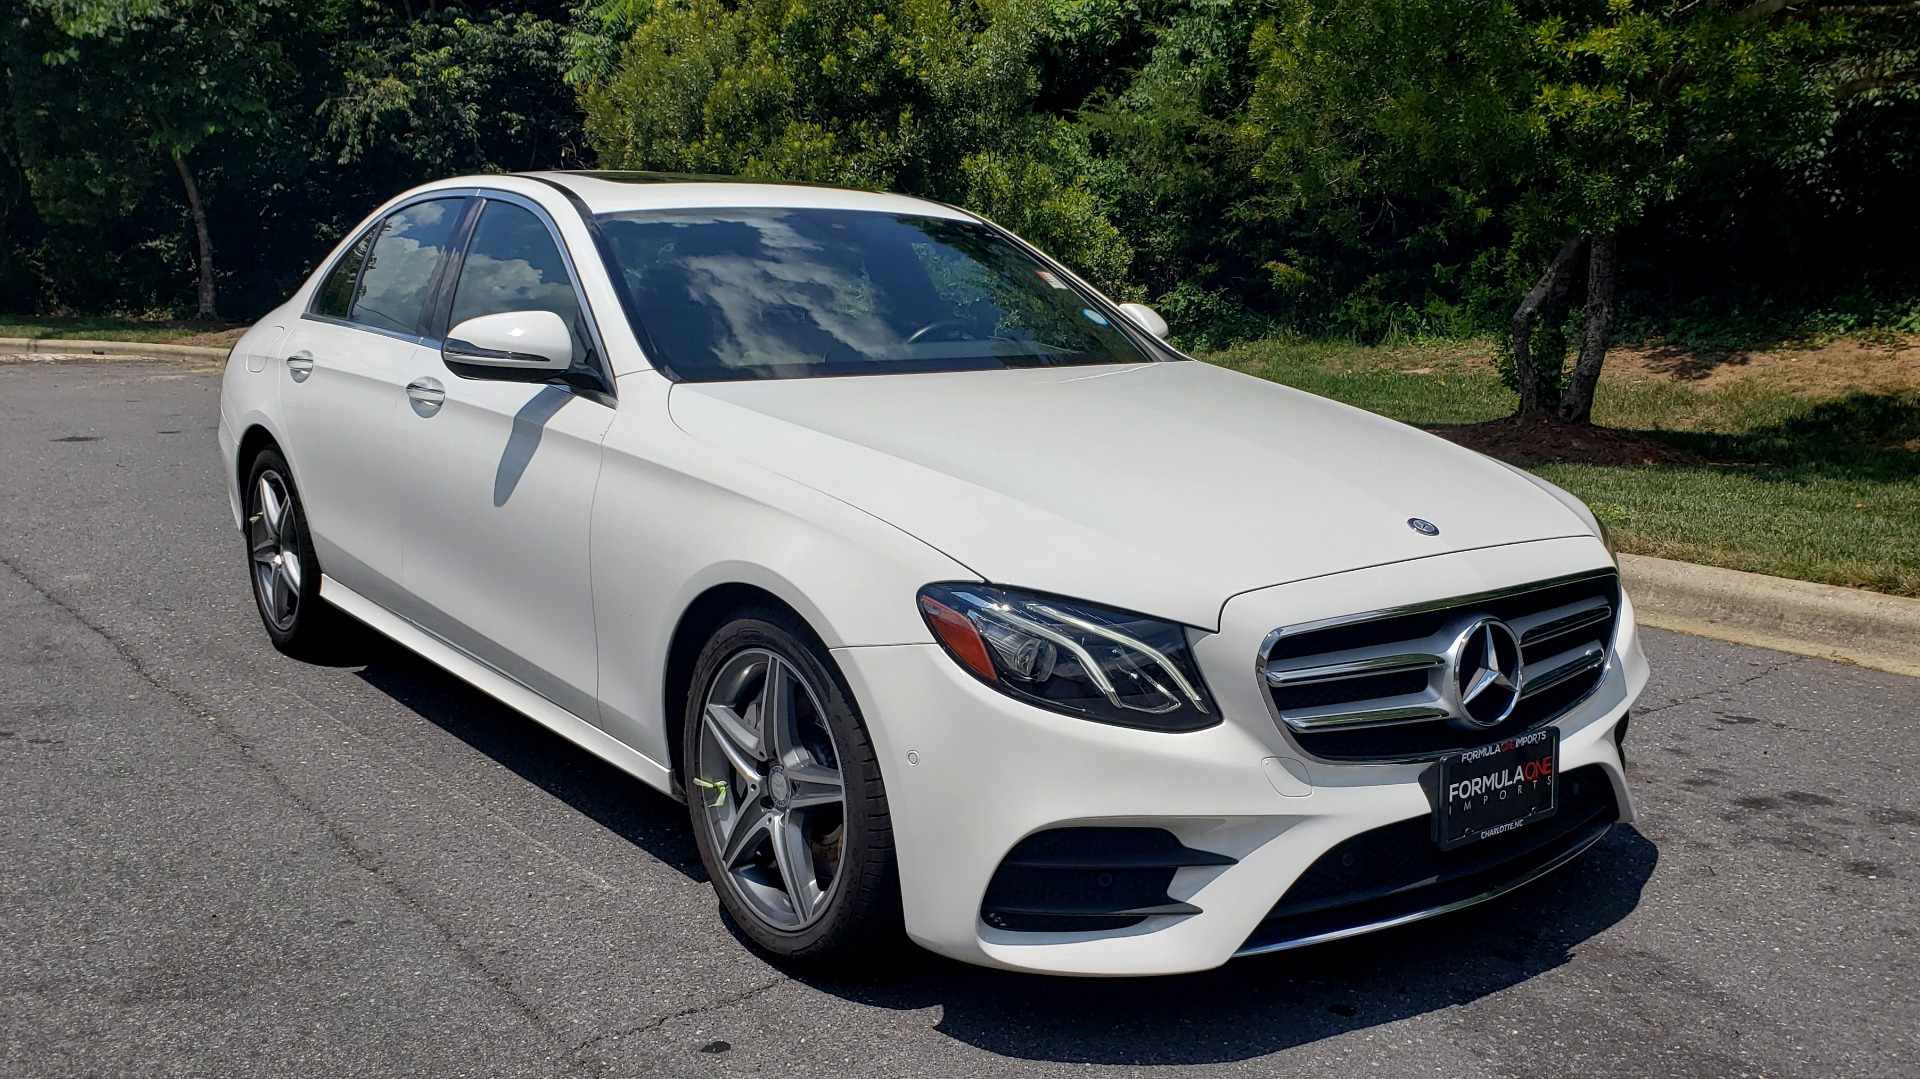 Used 2017 Mercedes-Benz E-CLASS E 300 PREMIUM / SPORT / NAV / SUNROOF / HTD STS / BSM / REARVIEW for sale $27,995 at Formula Imports in Charlotte NC 28227 4